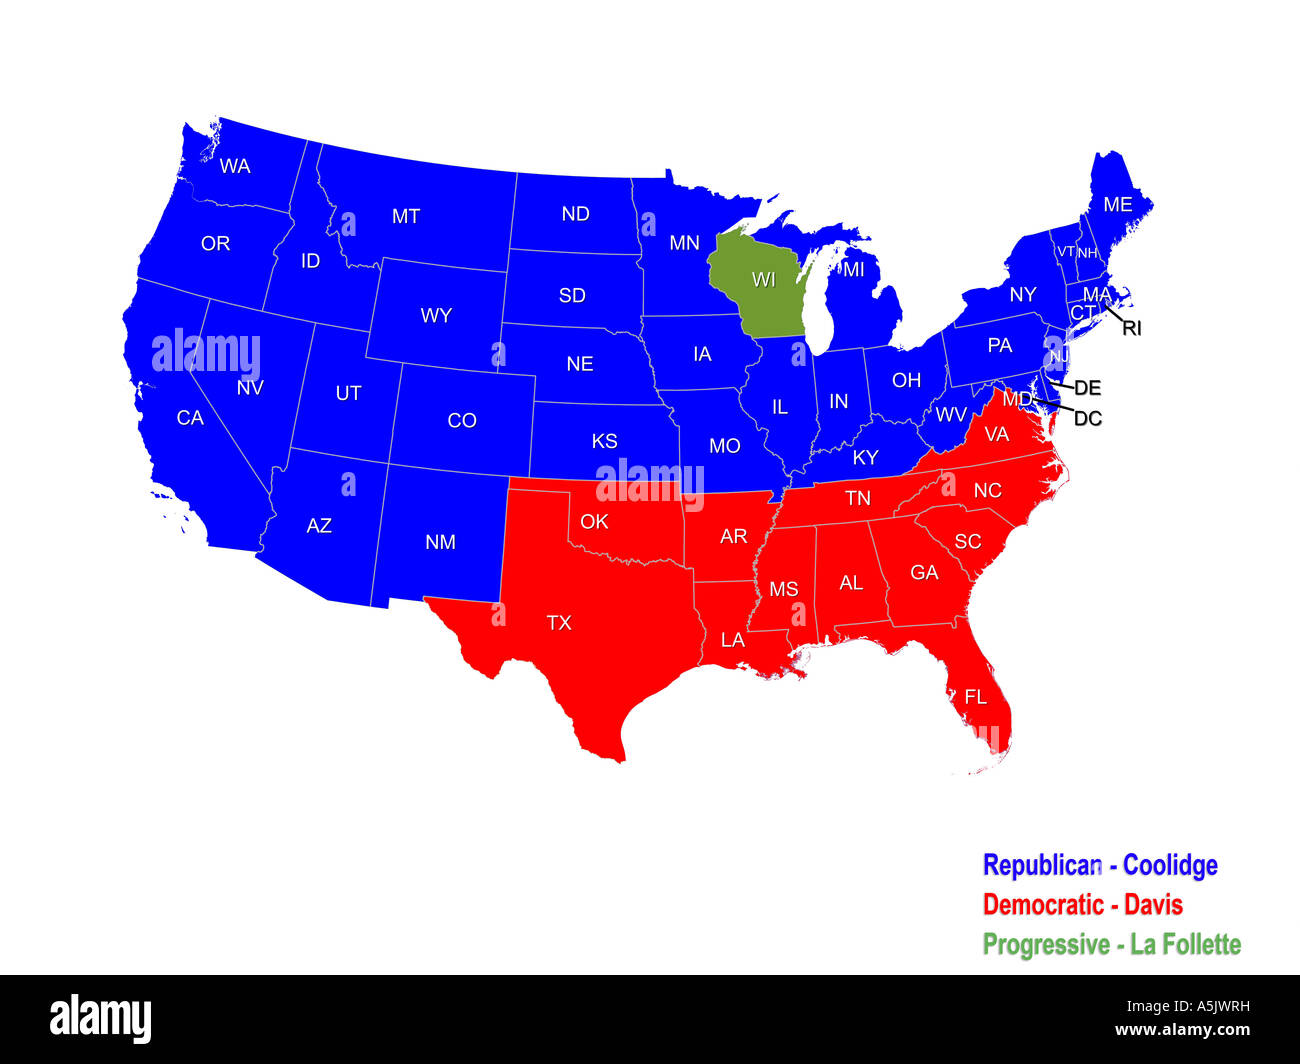 Popular 177 List Map Of Election Results - Us Election Results Red Blue Map